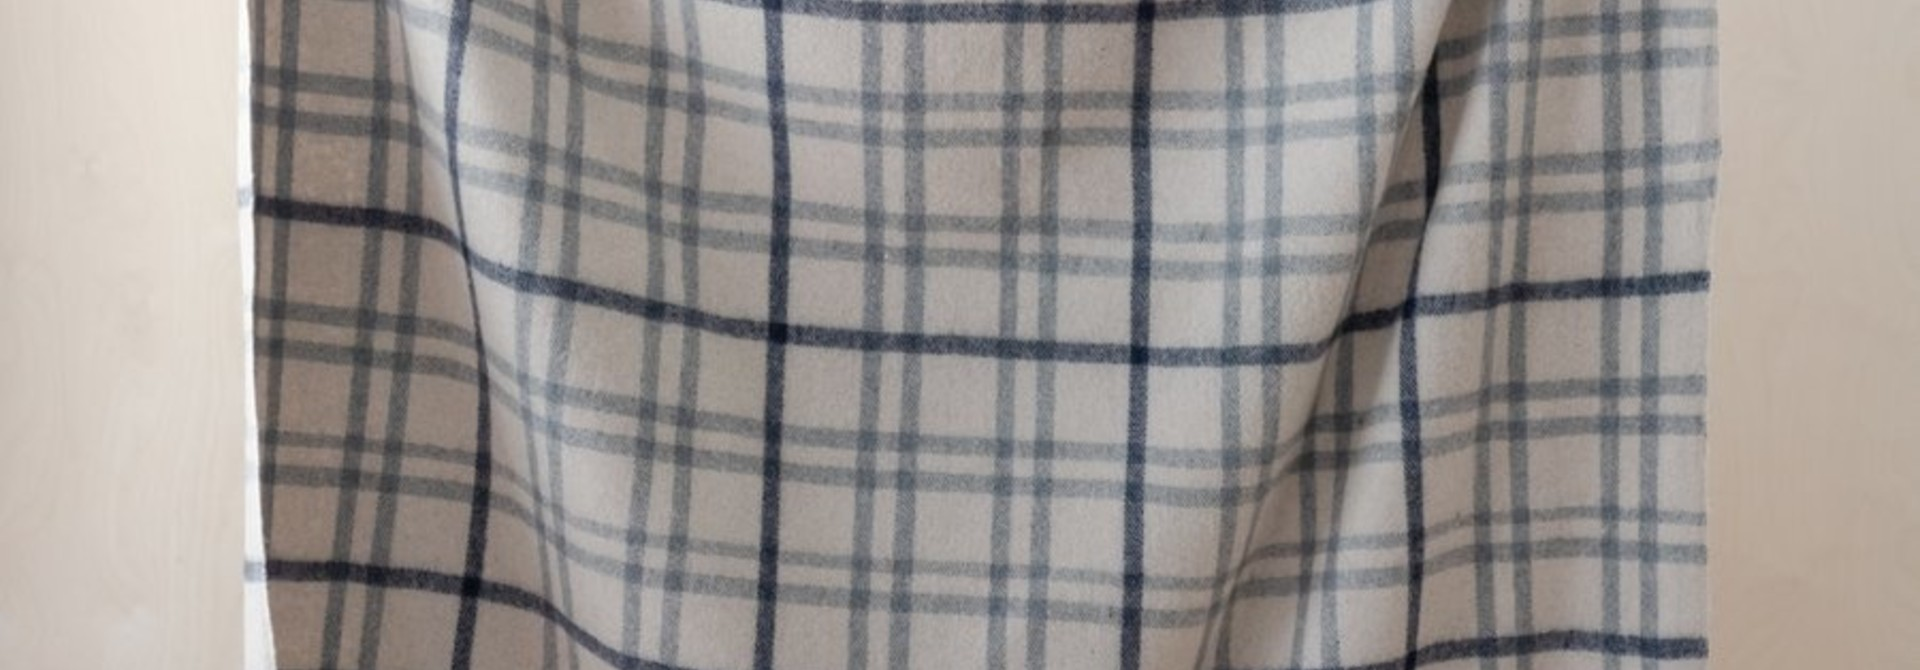 Recycled Wool Blanket - Light Grey Check